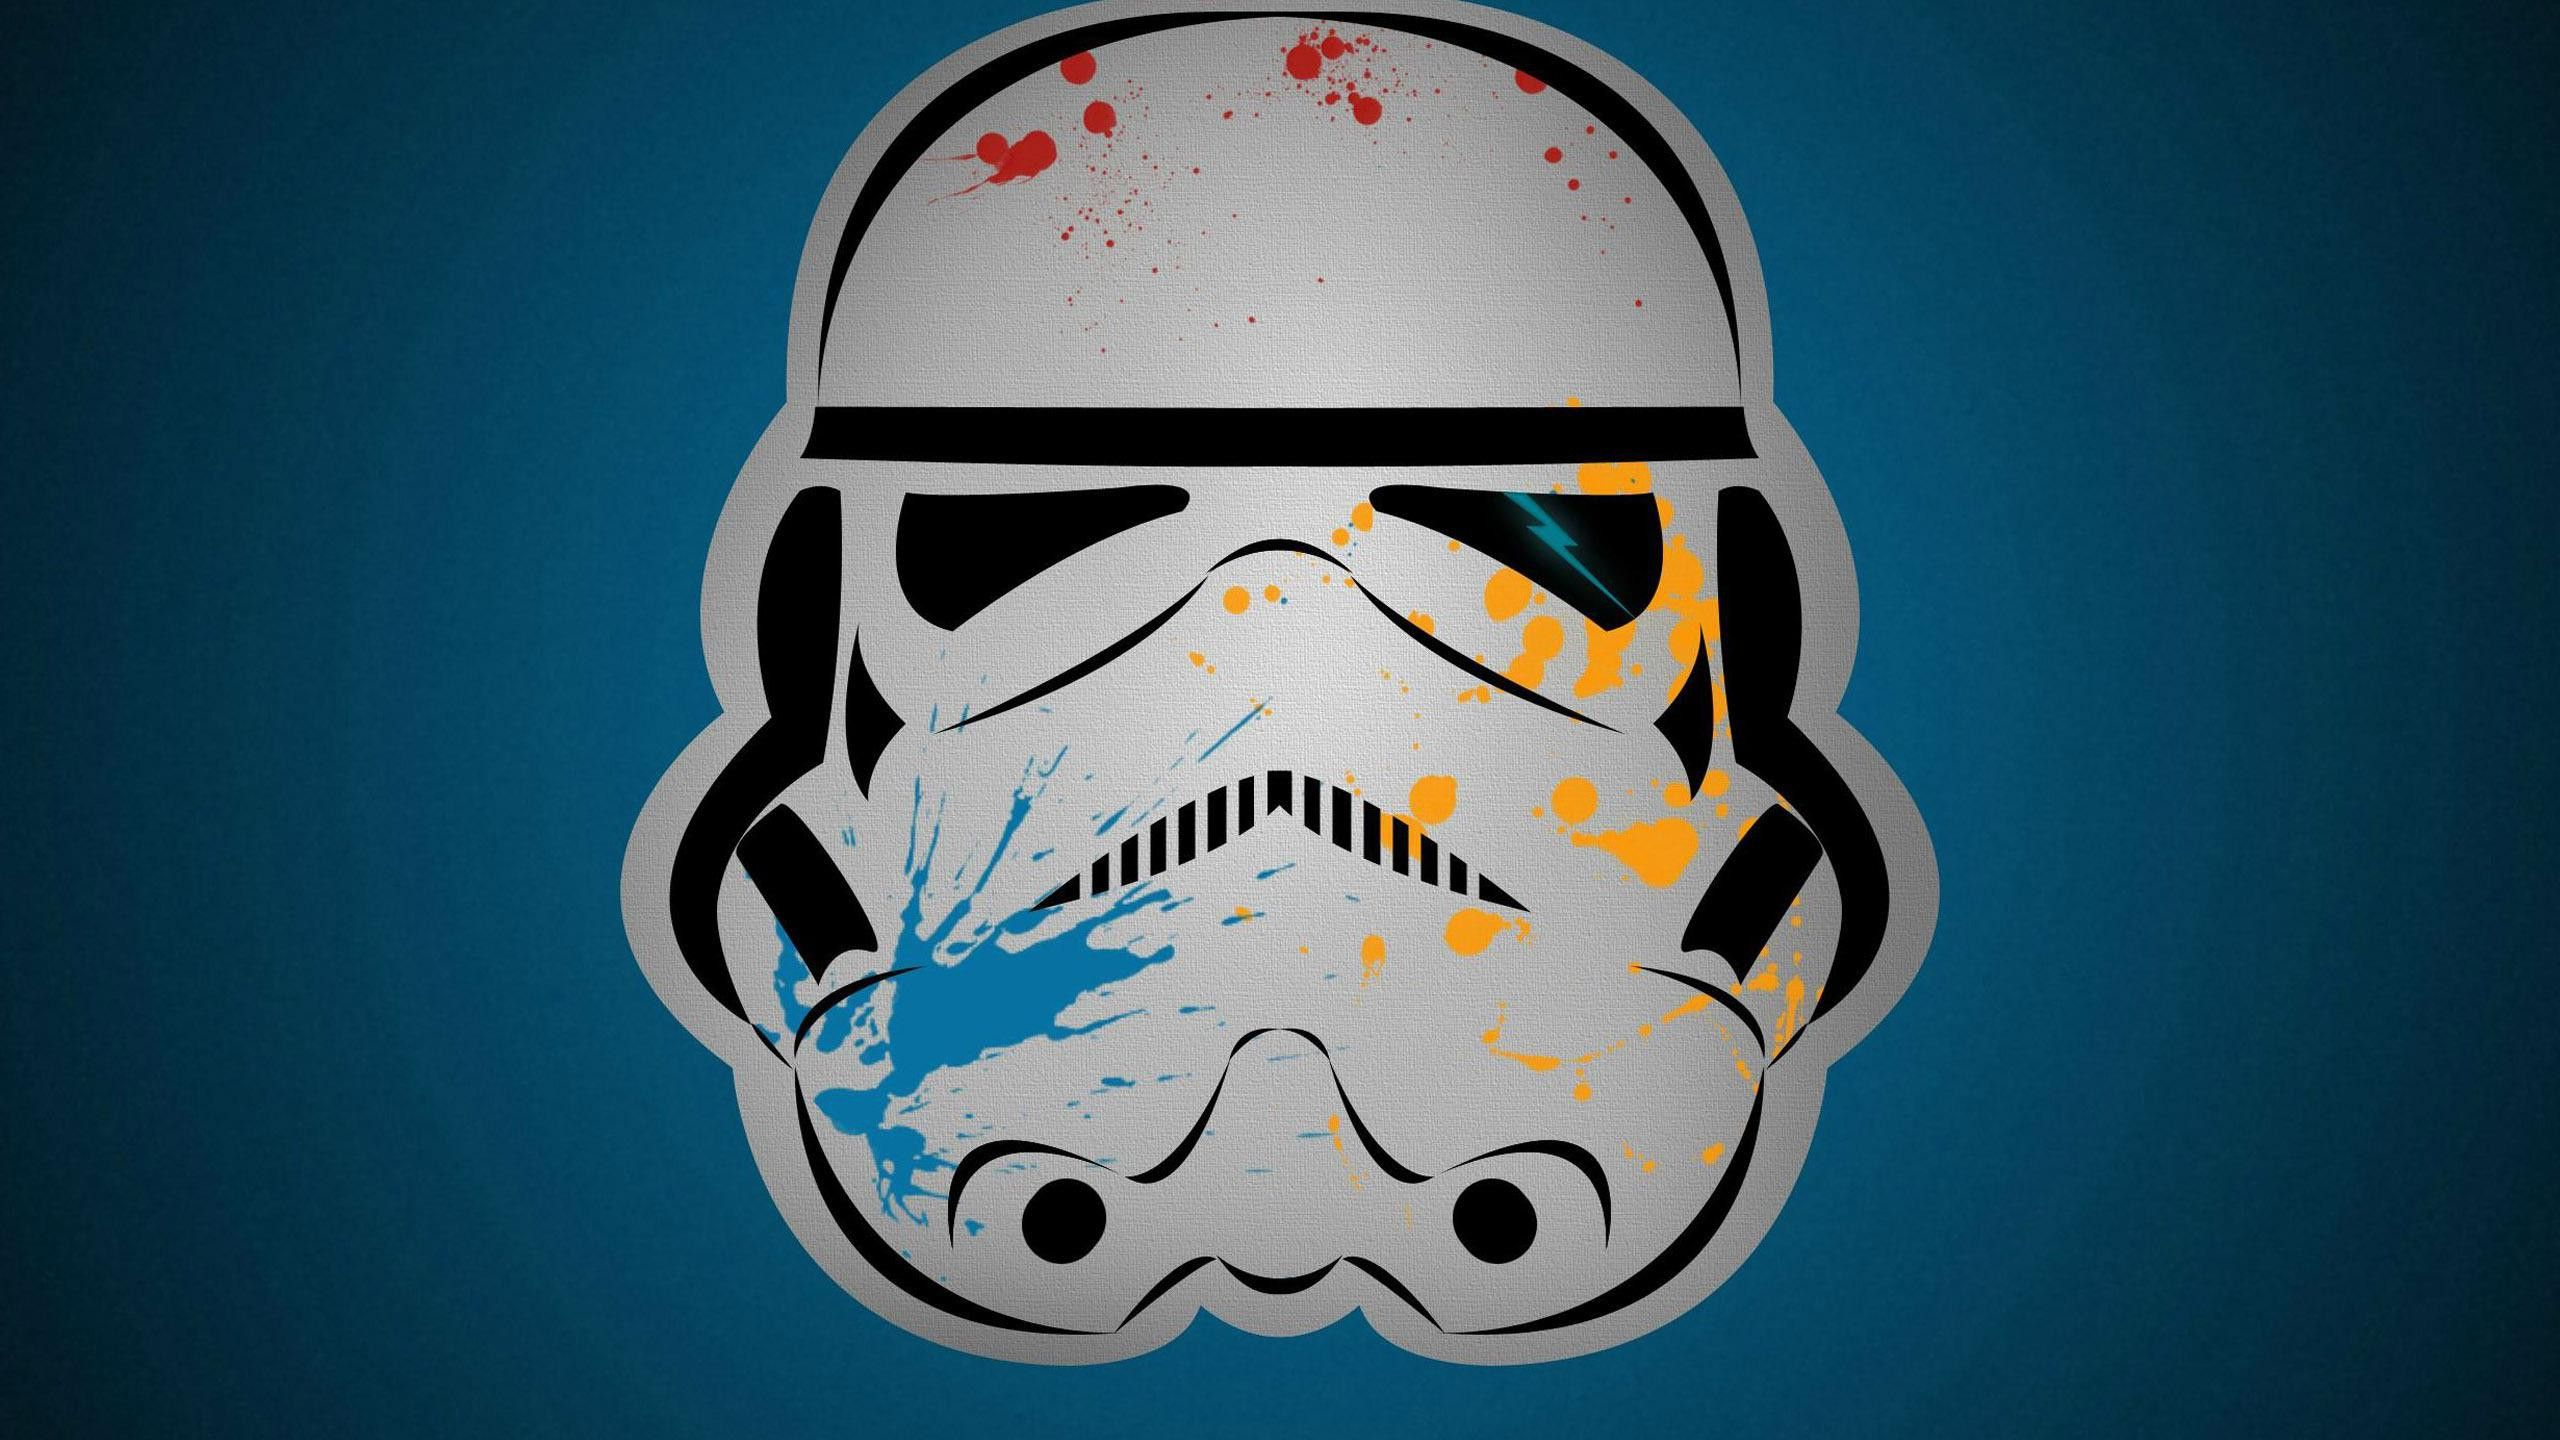 2560x1440 Stormtrooper - Star Wars free desktop backgrounds and wallpapers